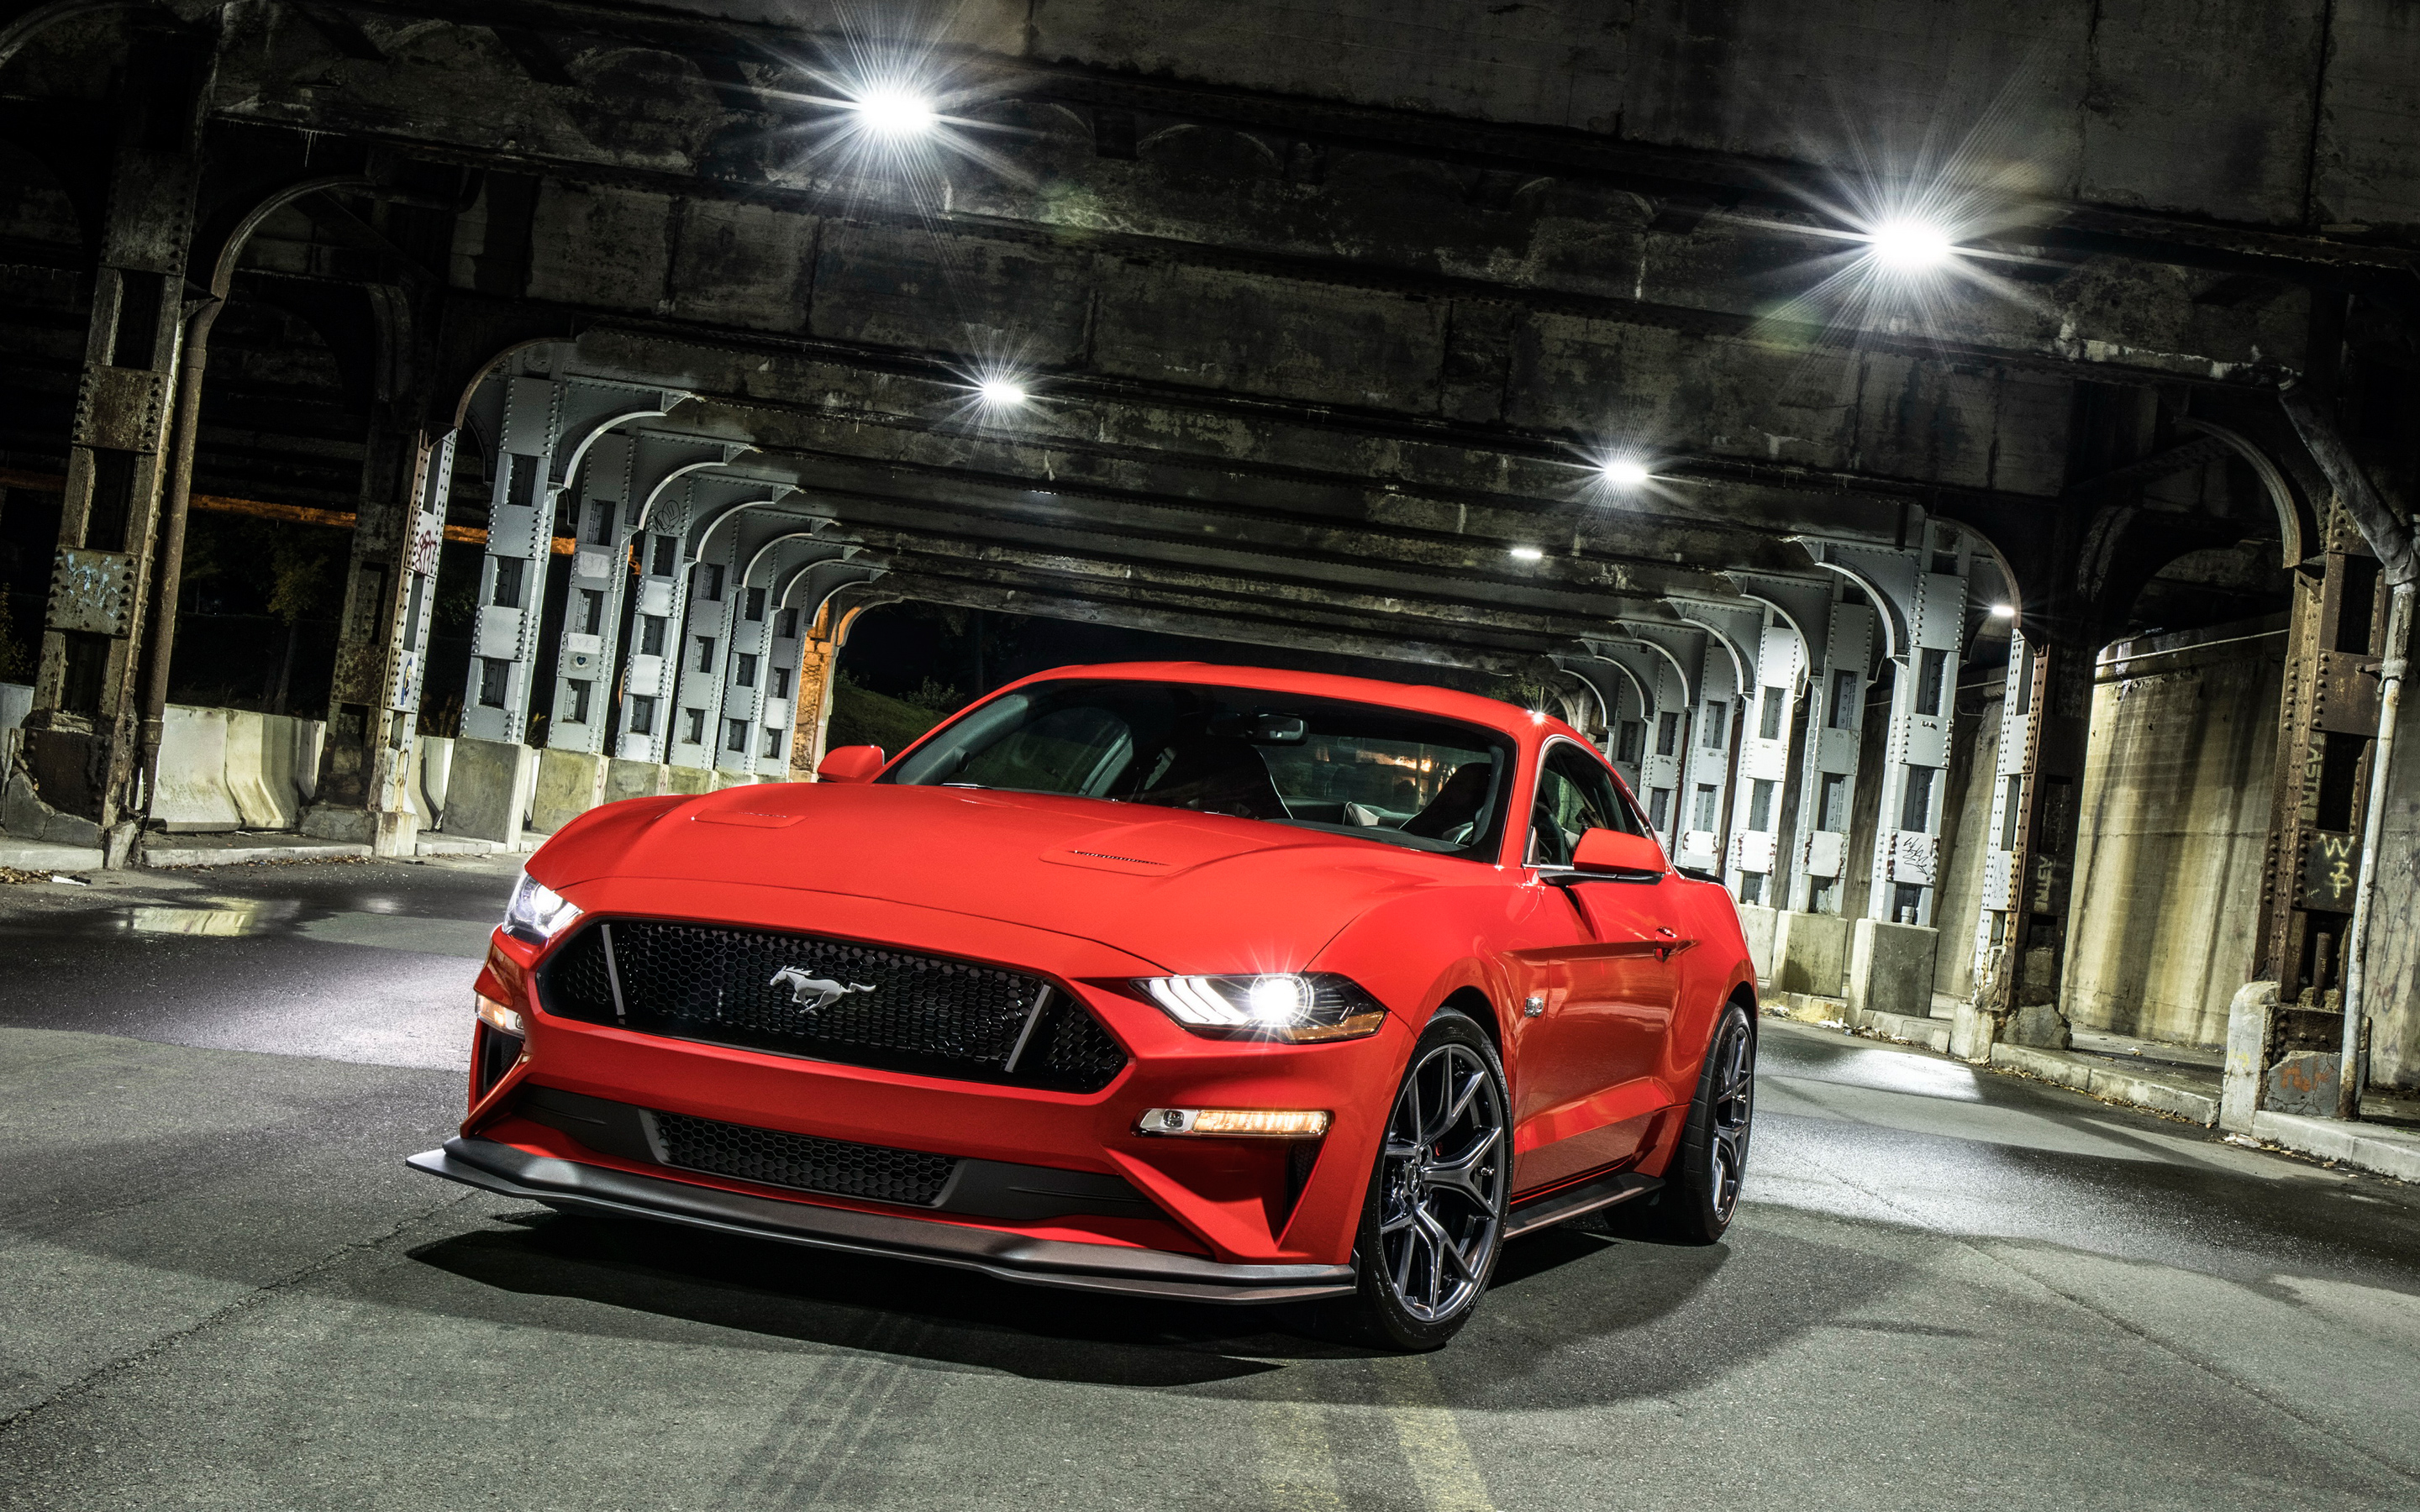 2018 Ford Mustang Gt Performance Pack Level 2 4k Wallpapers Hd